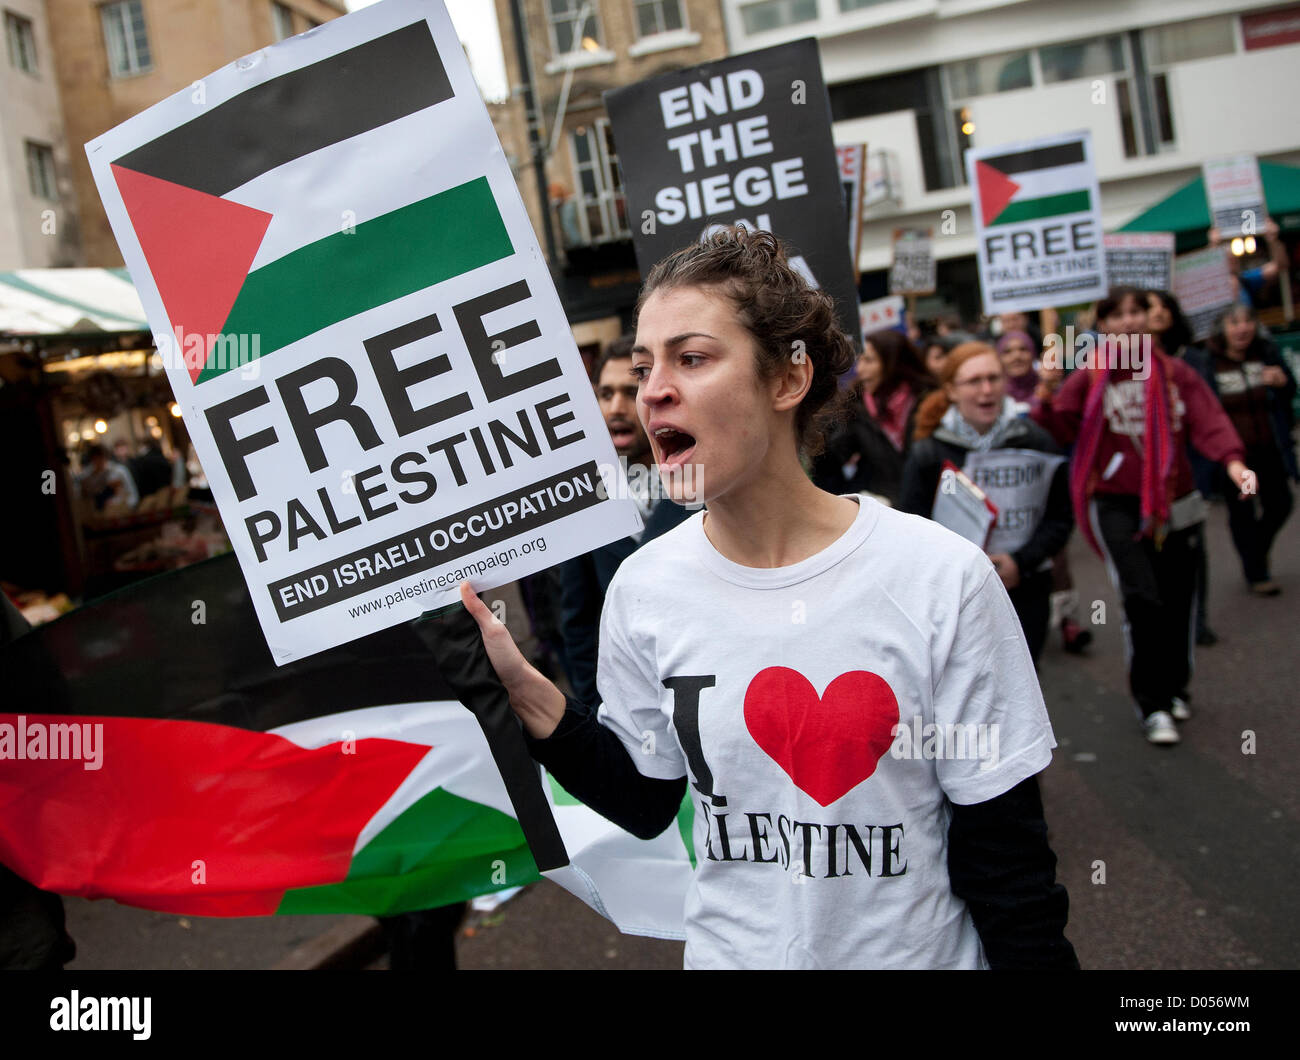 Cambridge, UK. 17th November 2012. Free Palestine and End the Siege of Gaza and stop the Israeli Occupation Demonstration - Stock Image